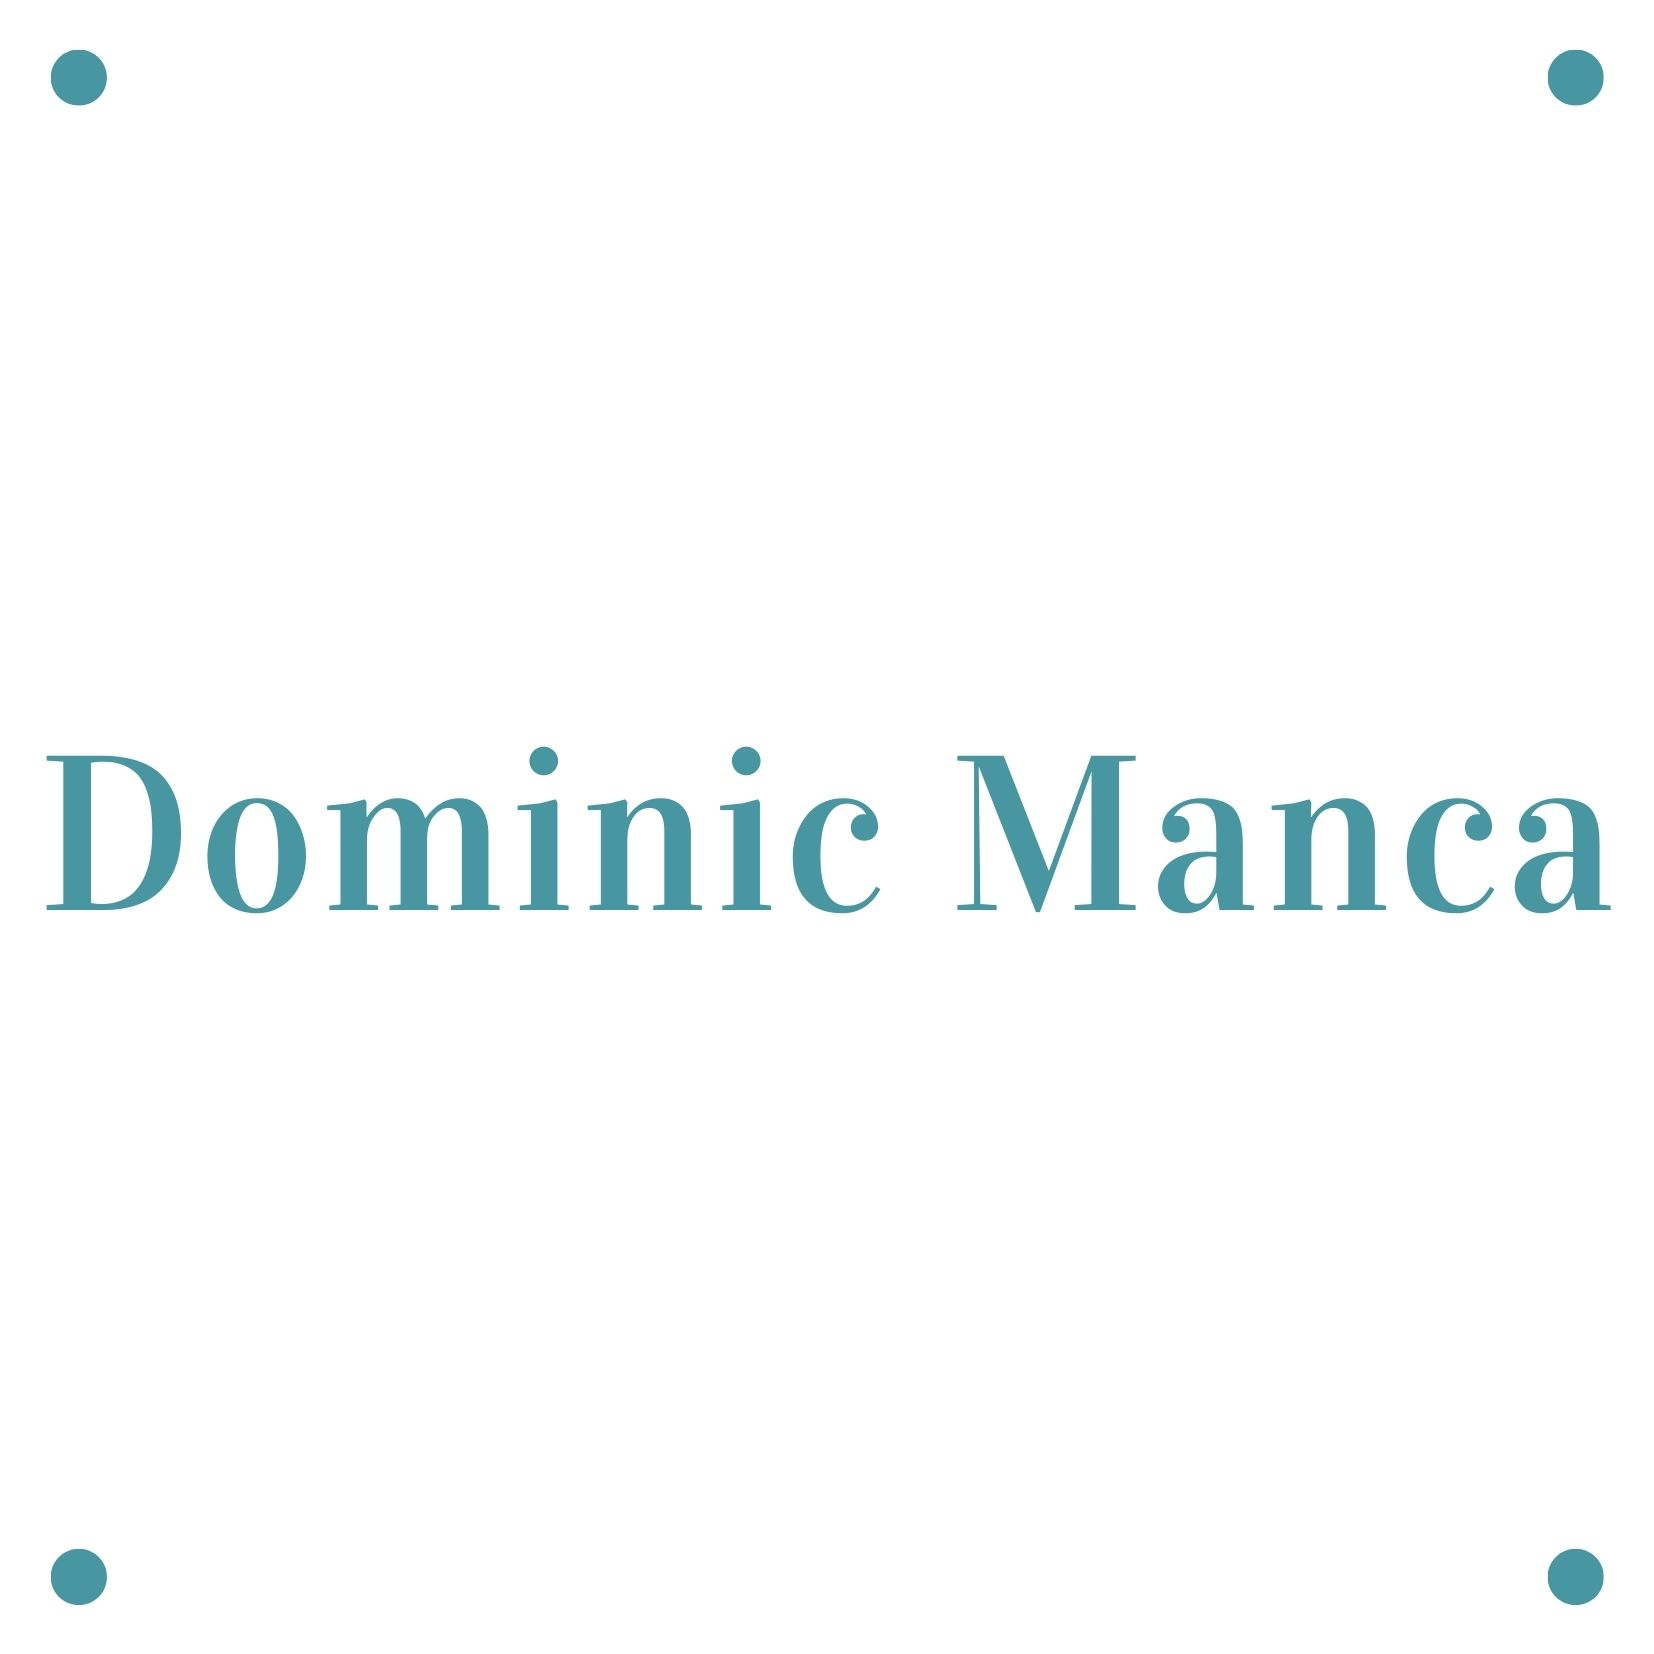 """Dominic Manca<br><span style=""""color: #0aadeb;"""">Operations Manager </span>"""